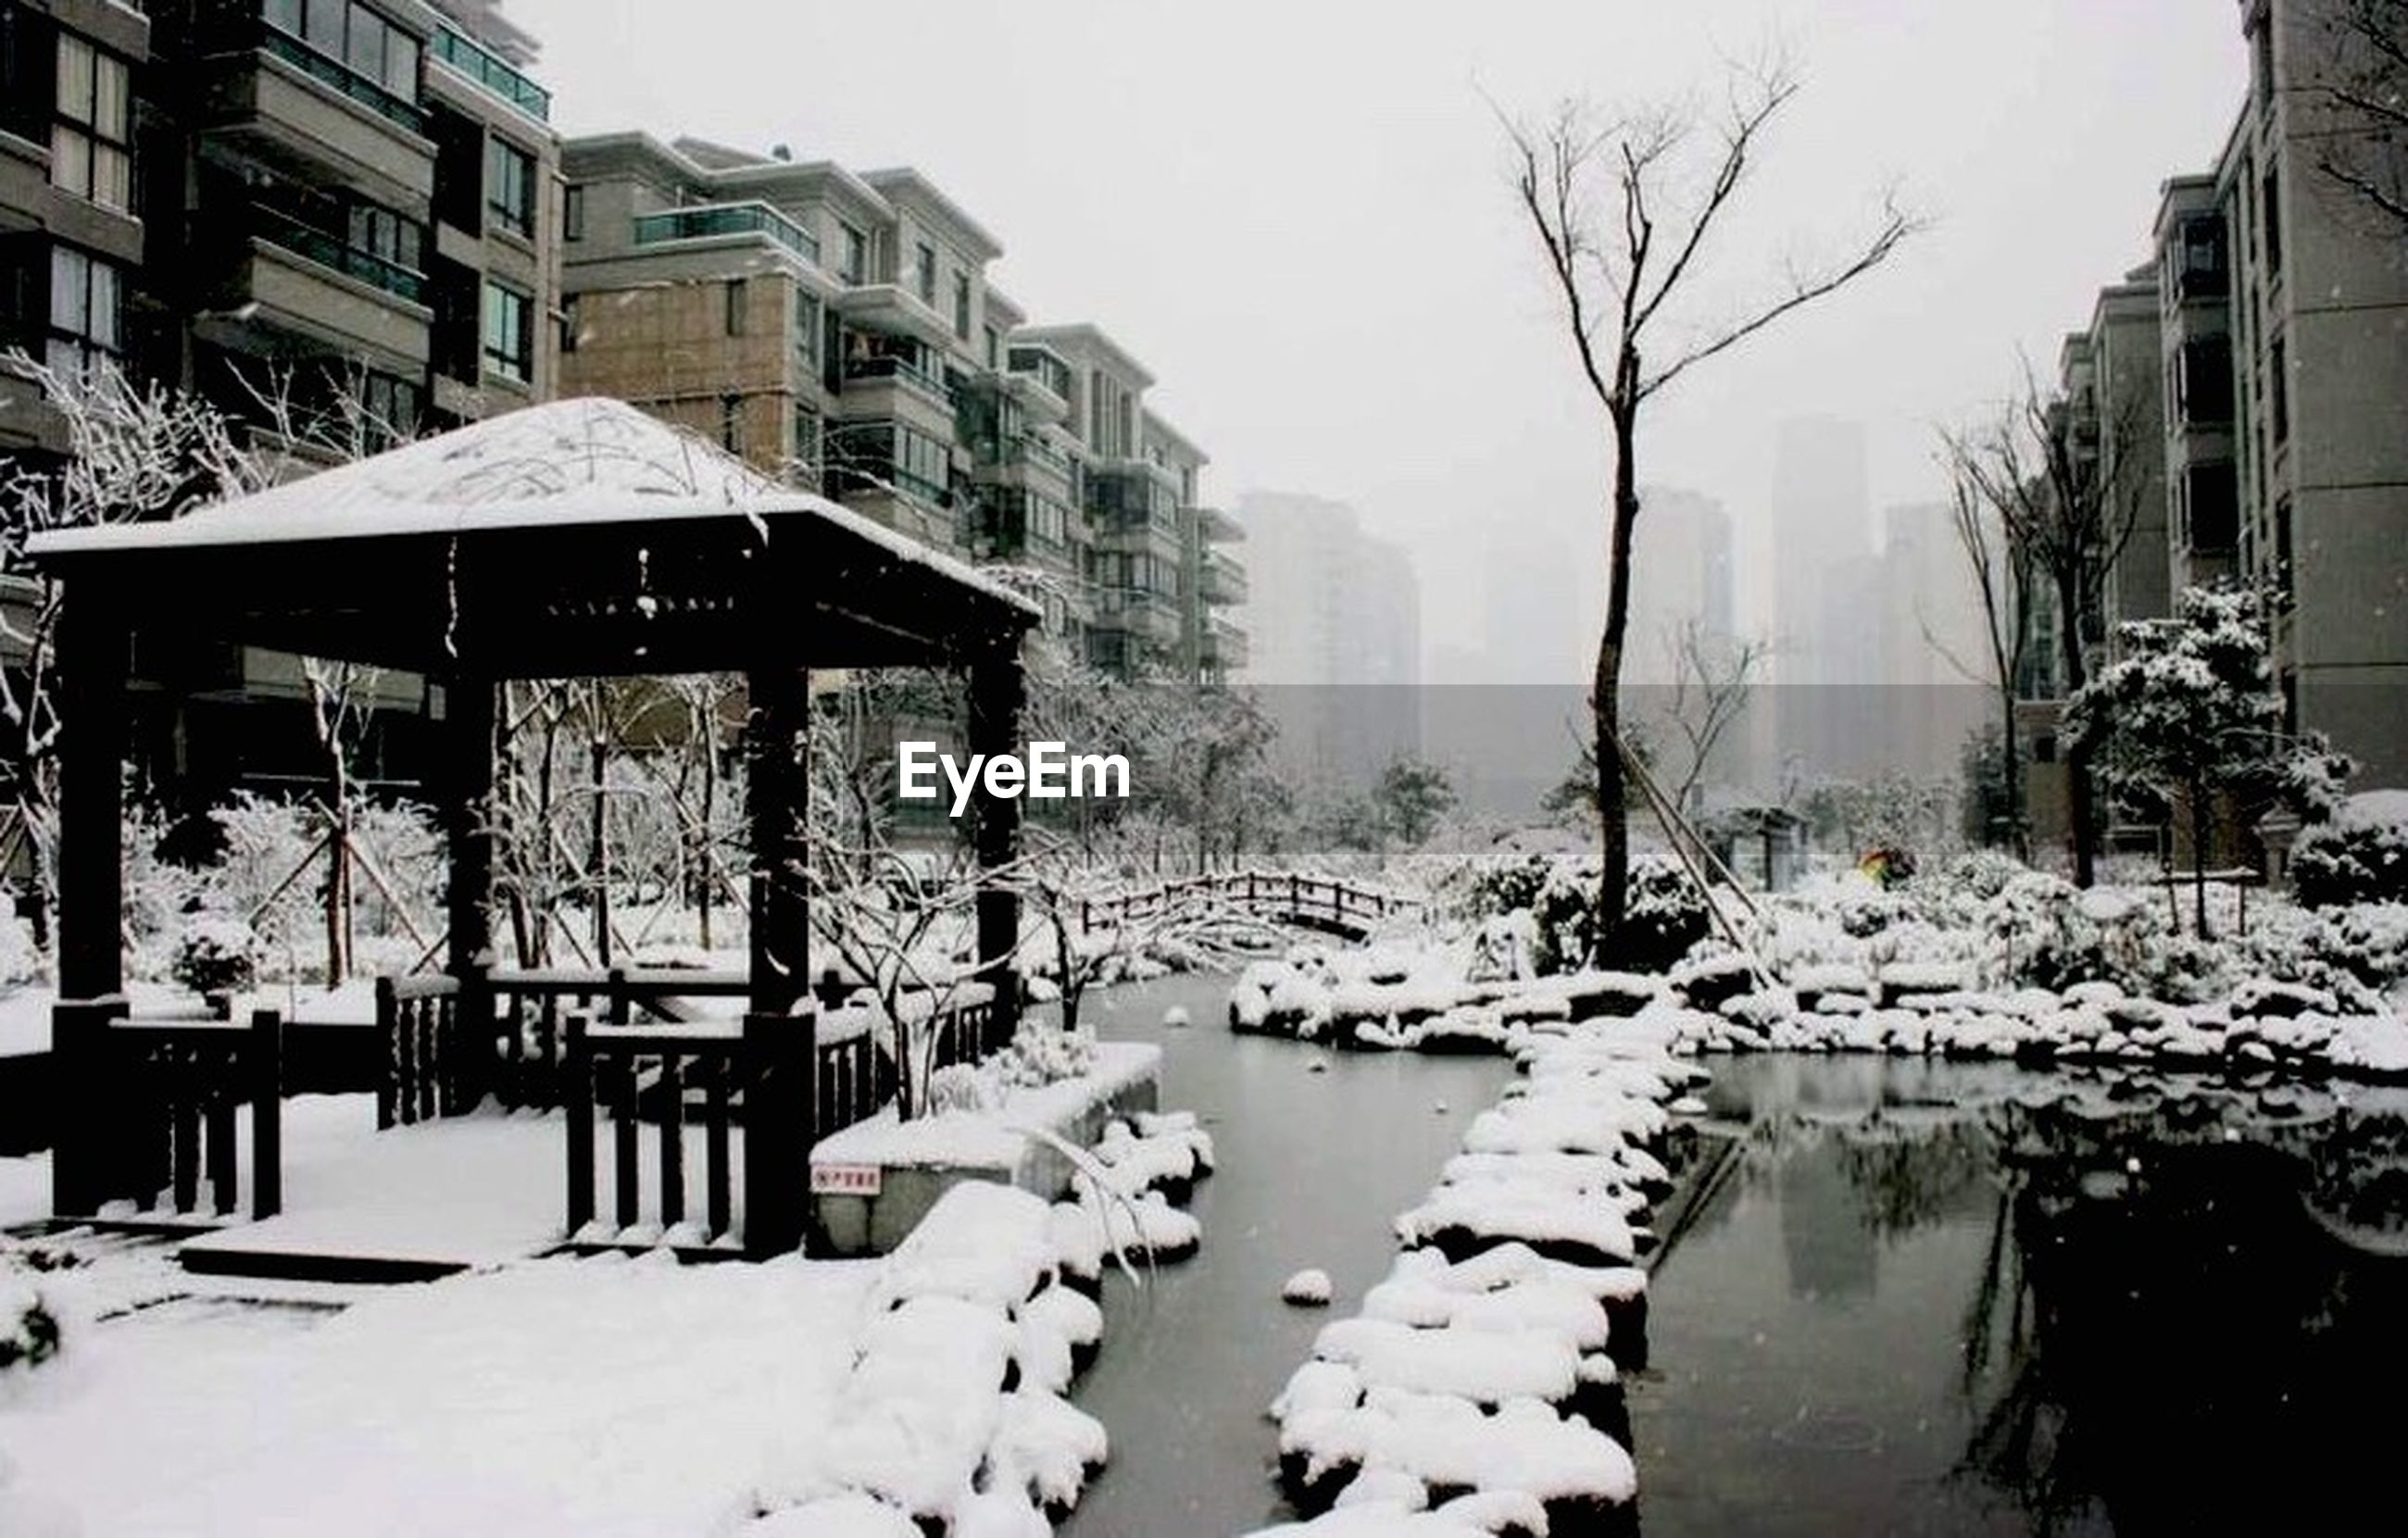 snow, winter, cold temperature, season, building exterior, weather, architecture, built structure, covering, frozen, bare tree, house, residential structure, residential building, tree, white color, city, covered, nature, street